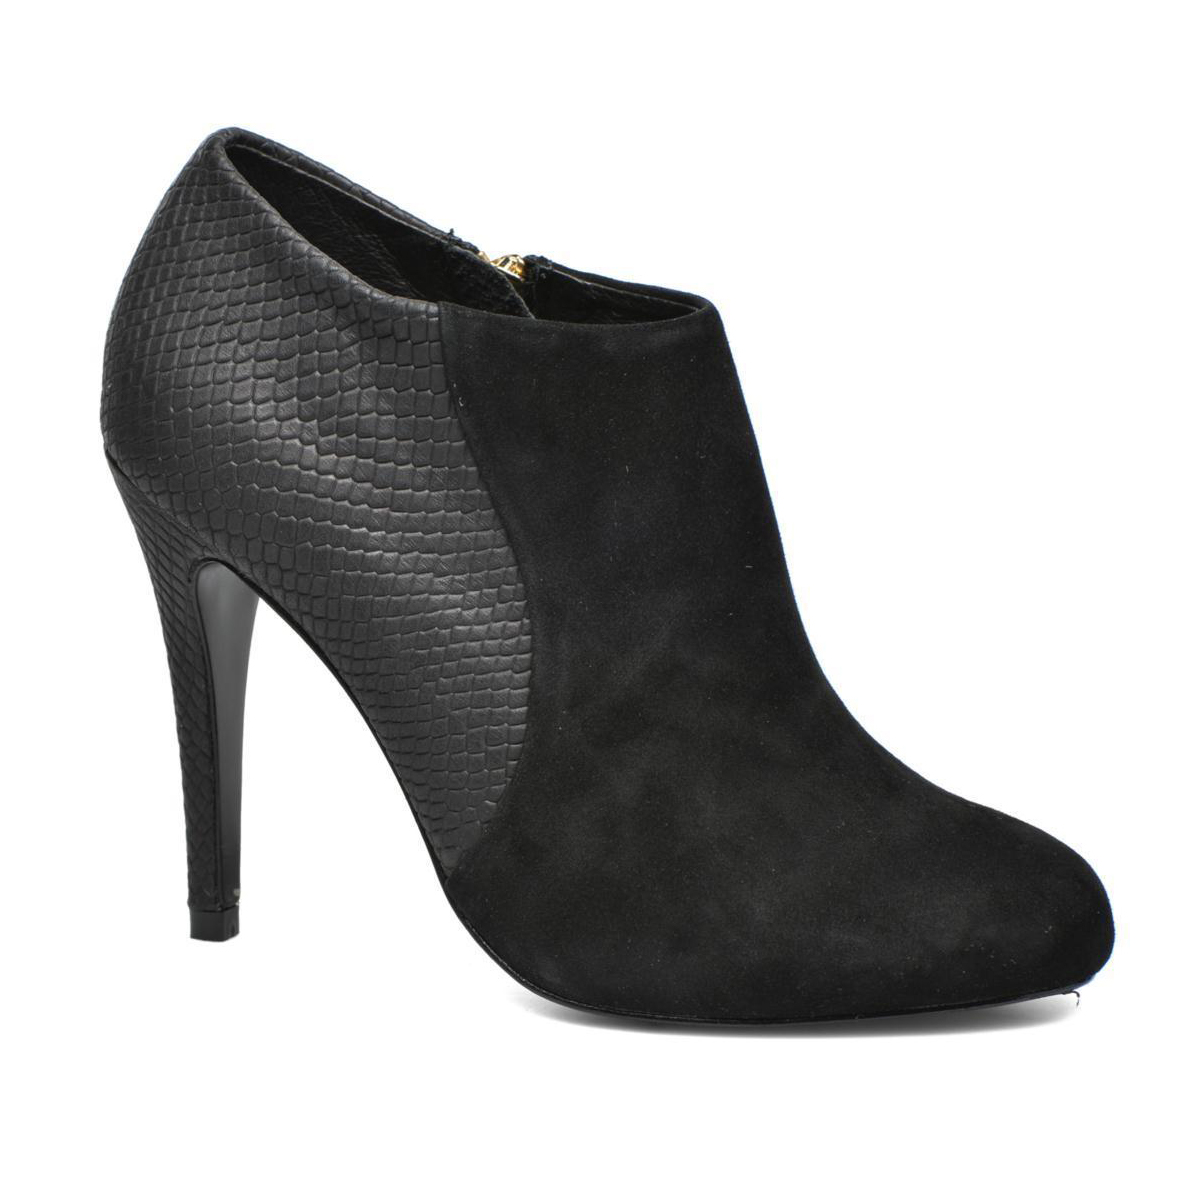 Cosmoparis ankle boots.